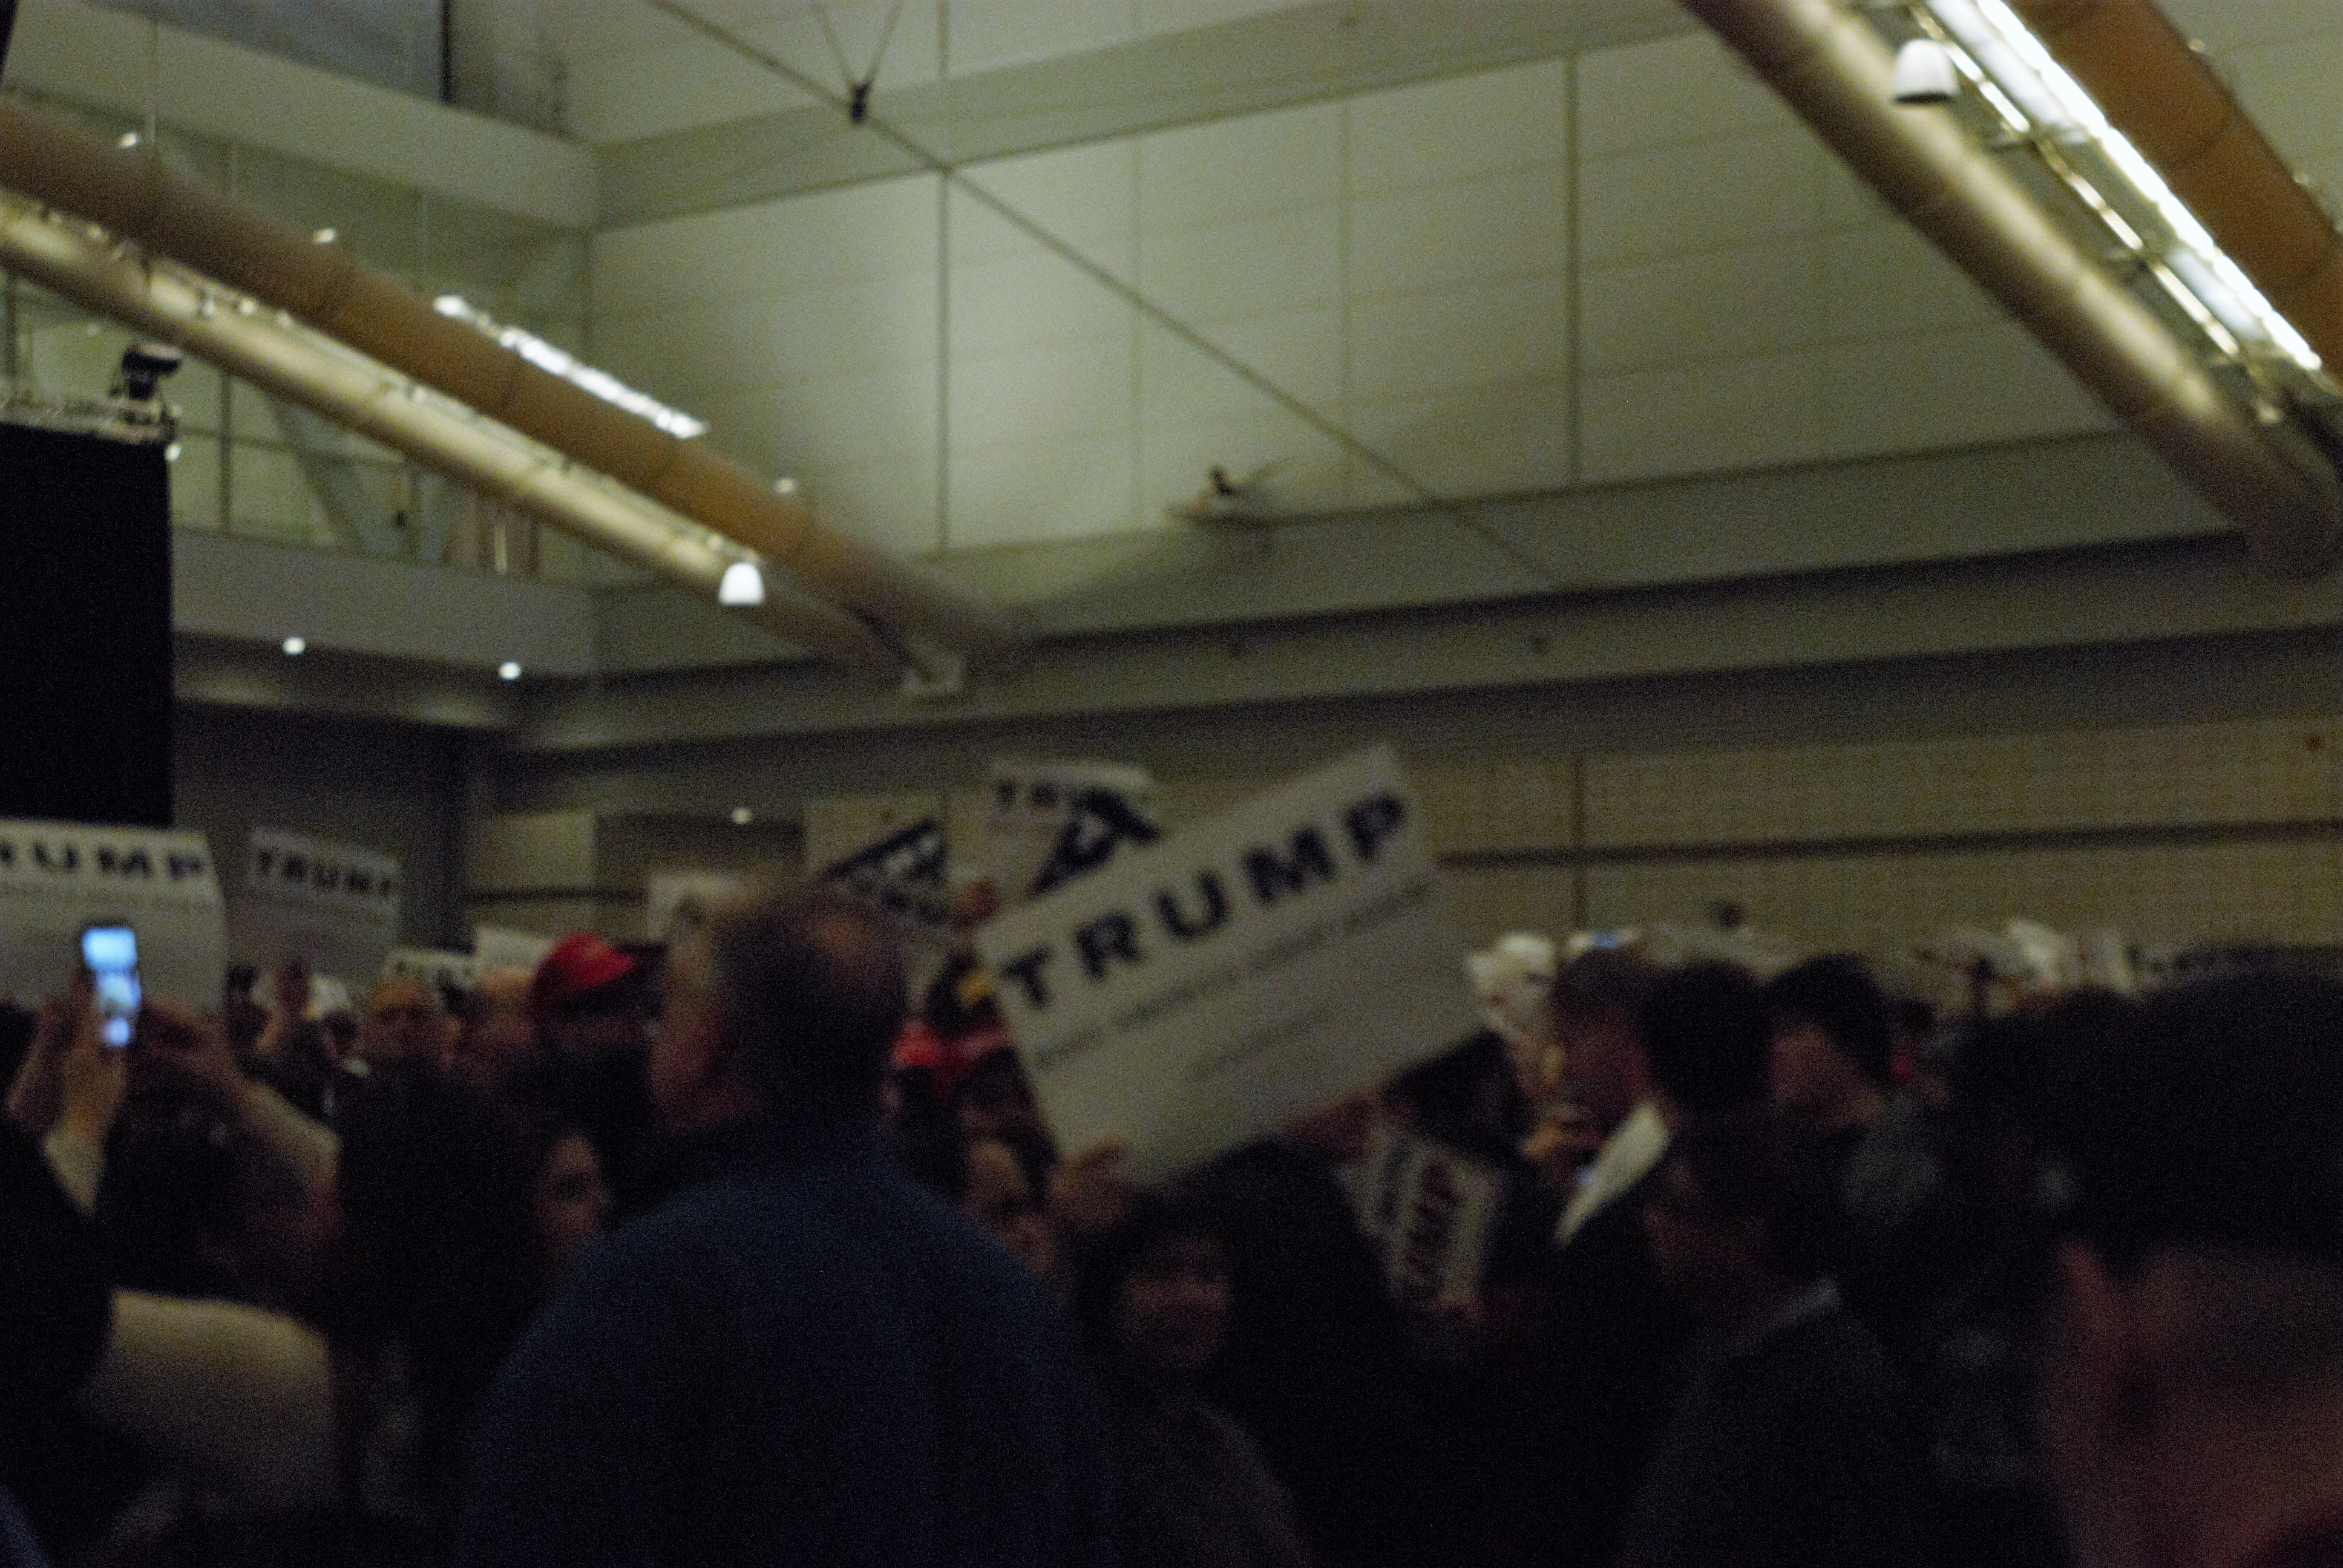 Trump supporters hold up signs in anticipation as 2 Unlimited blares through the loudspeakers indicating that Donald Trump is about to come out. Their phones are drawn in an attempt to catch a picture of Trump. (credit: Zeke Rosenberg/)